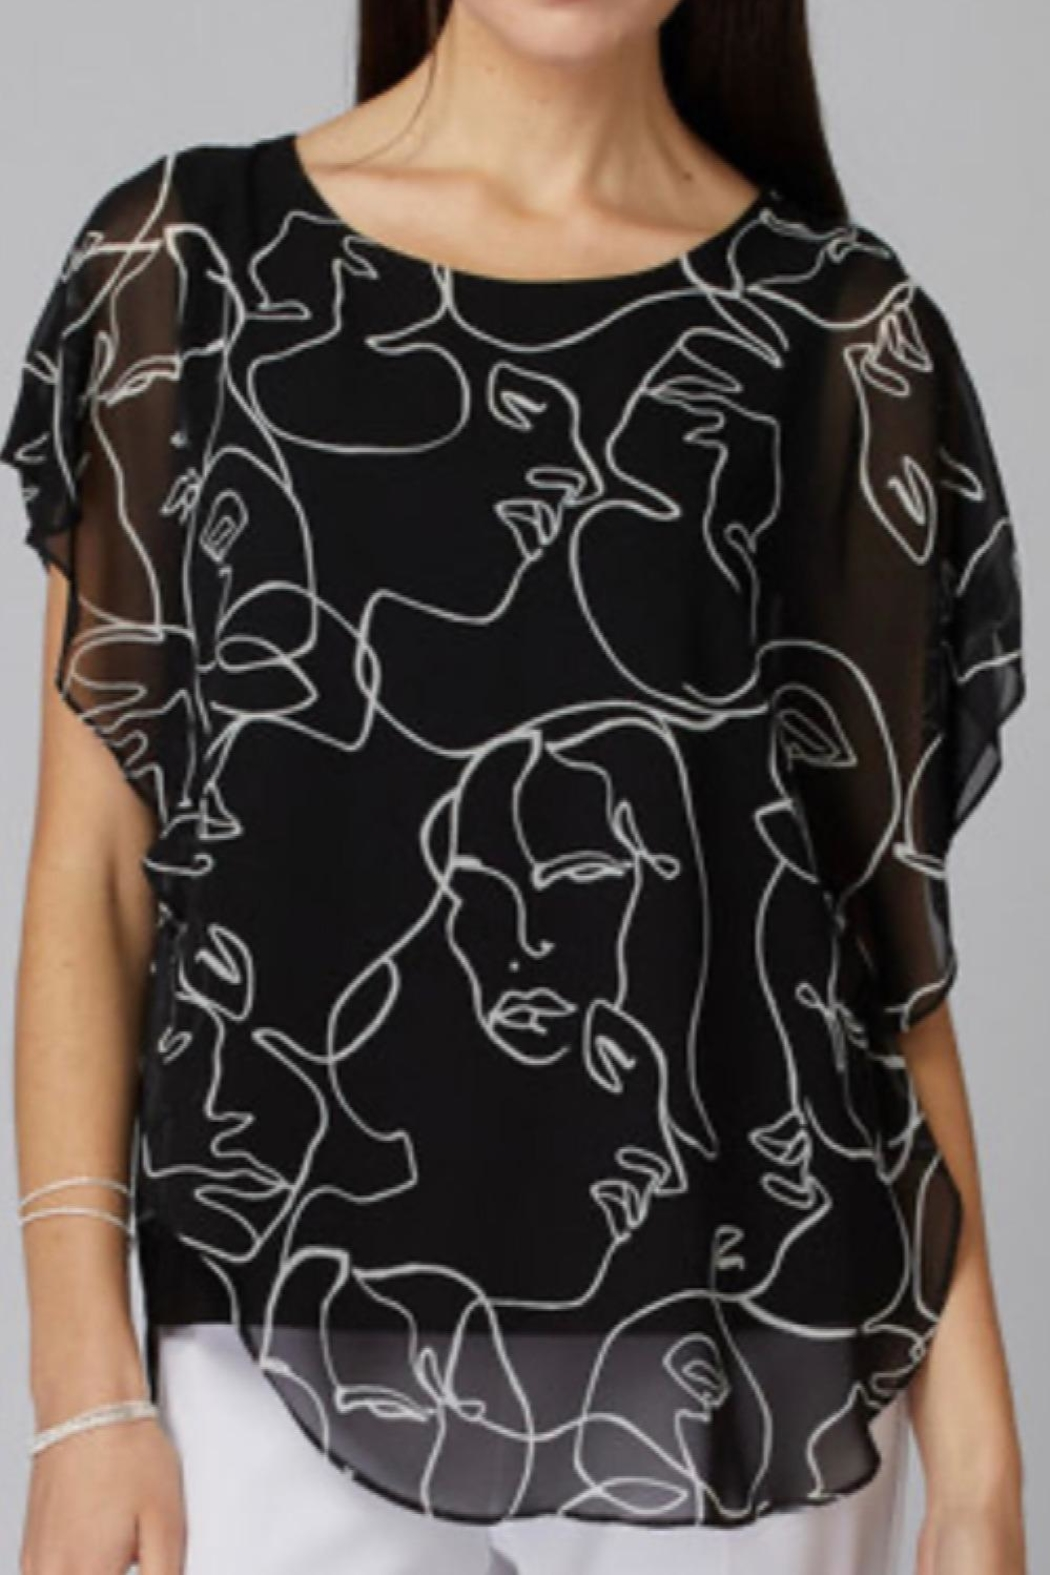 Joseph Ribkoff Sheer Over;lay Faces Tunic - Main Image